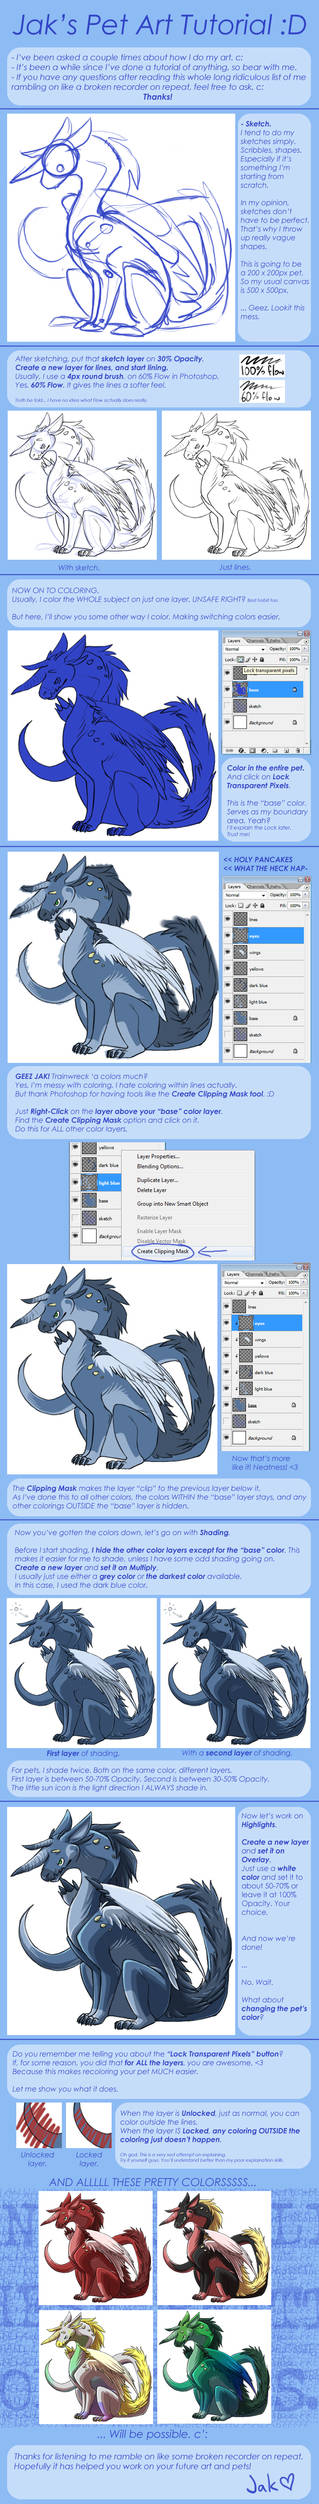 Pet Art Tutorial Ramblings